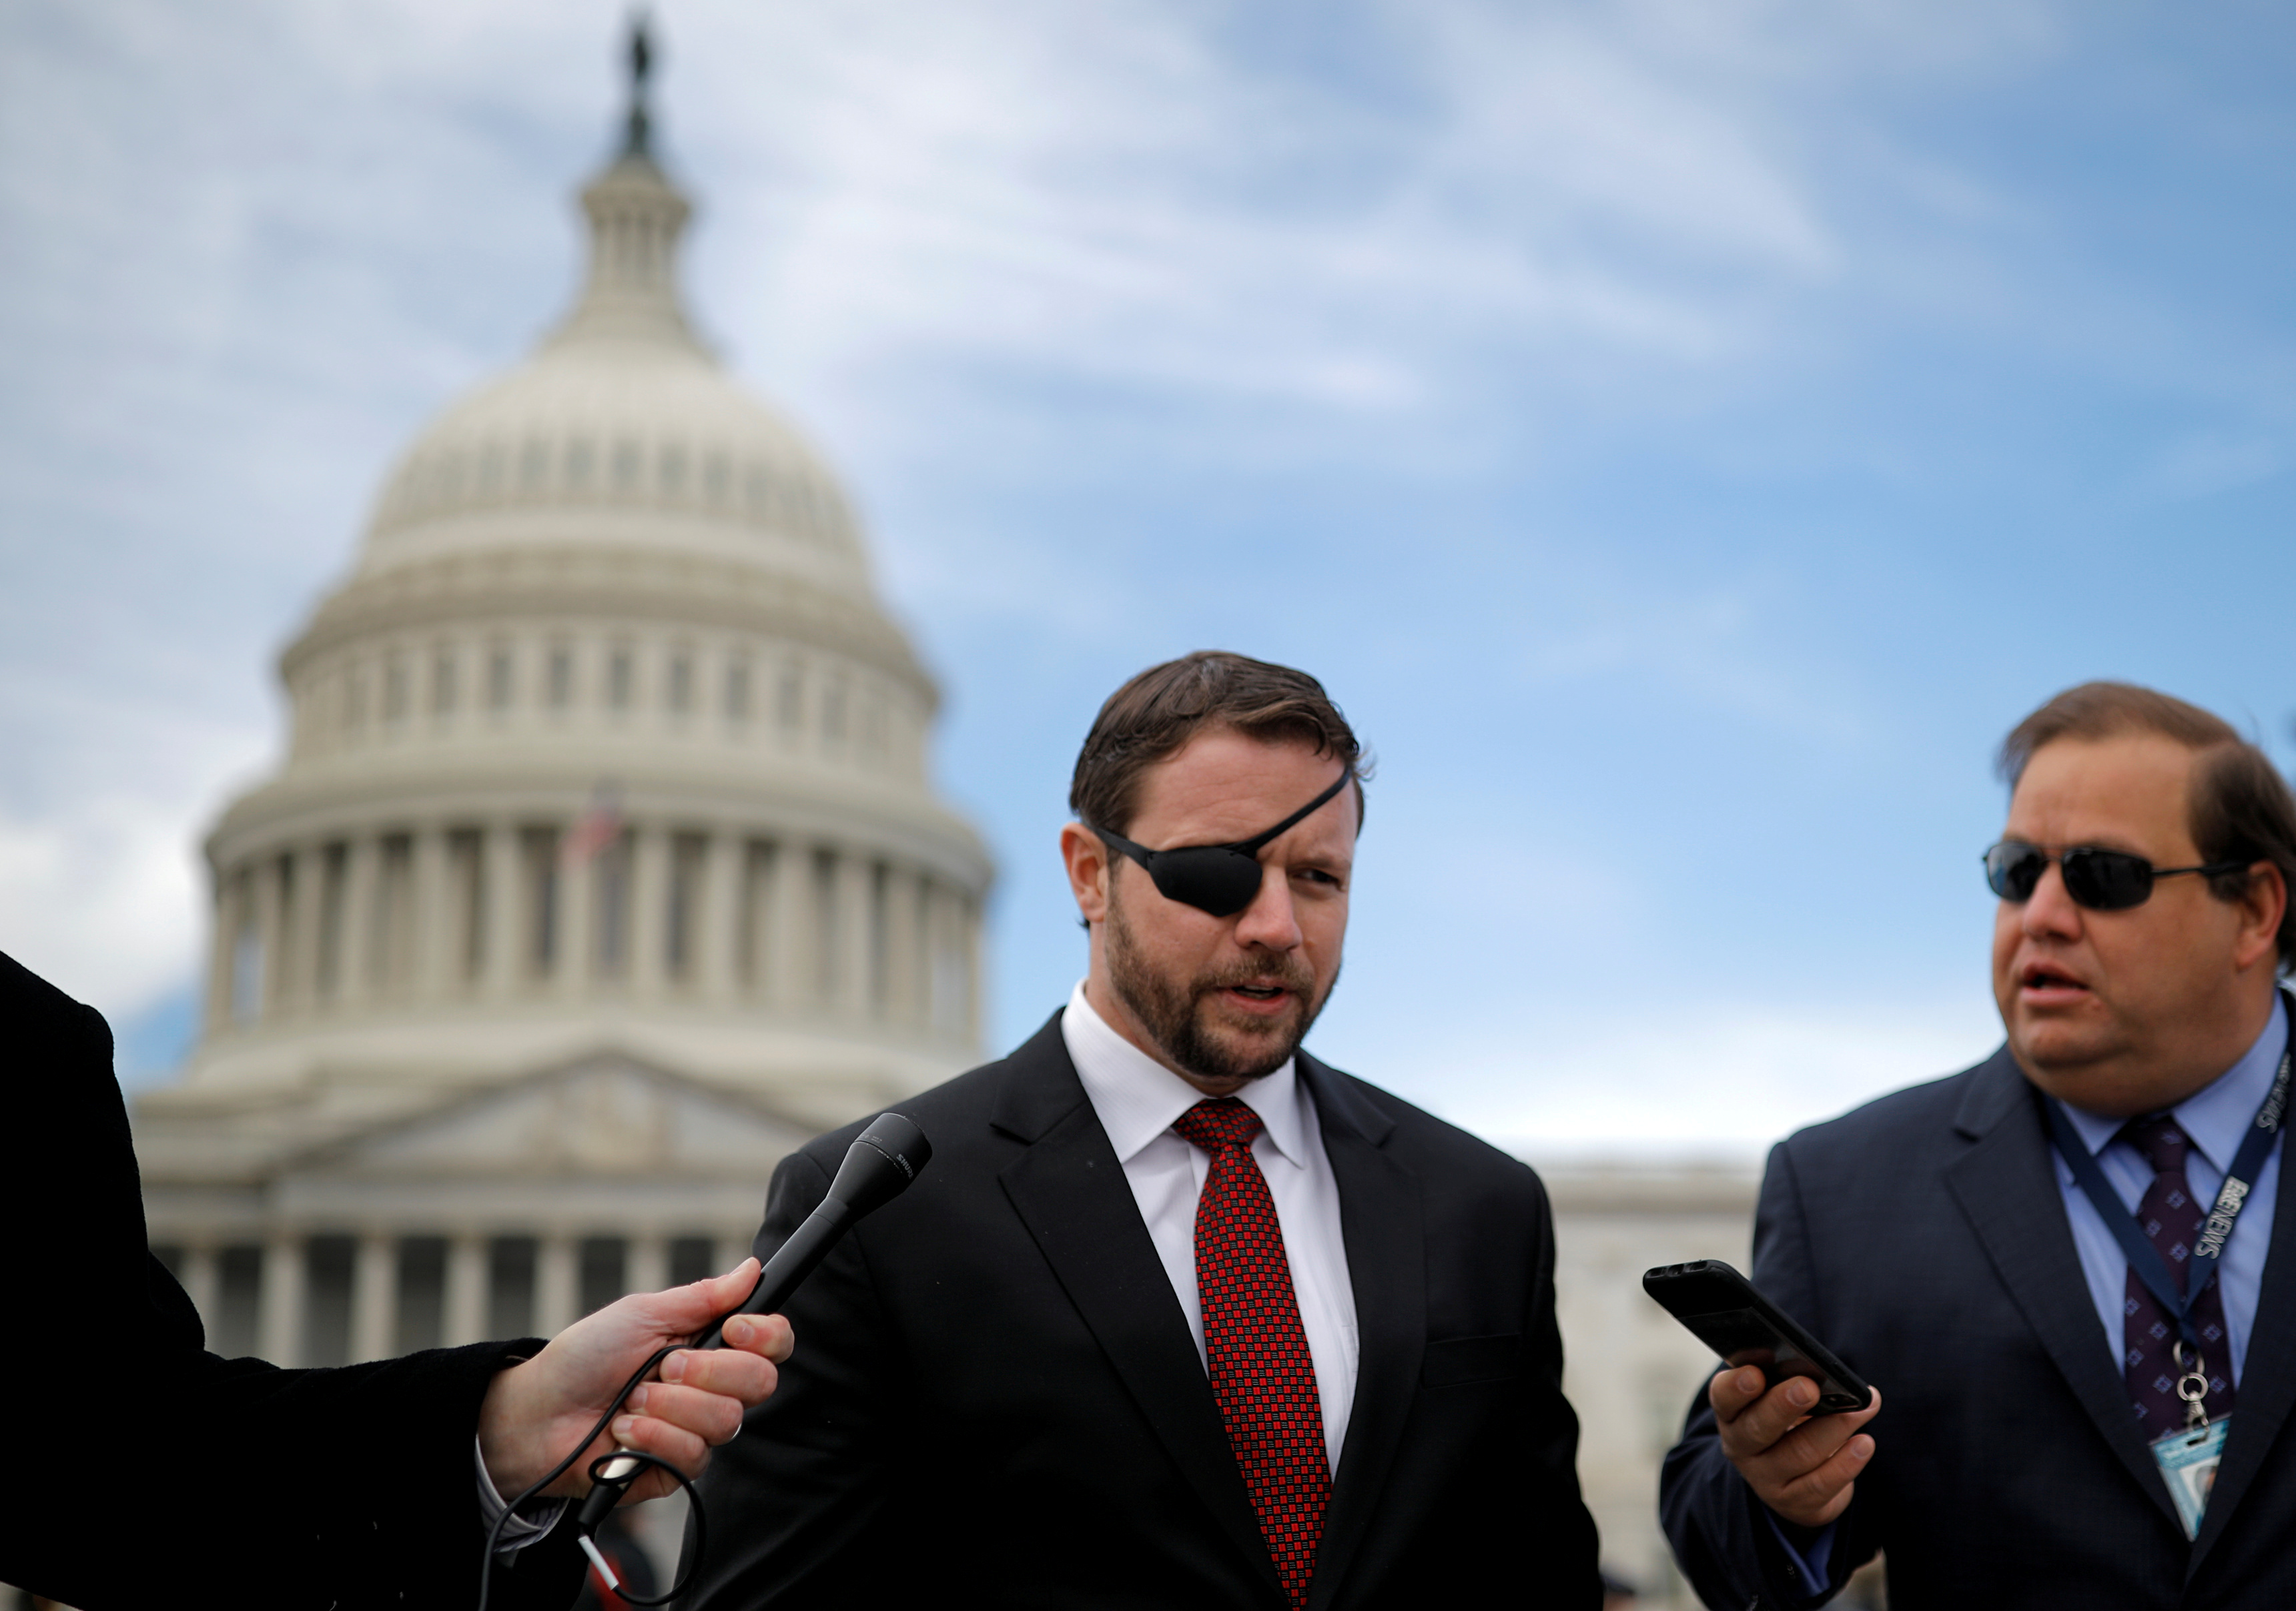 Republican Representative-elect Dan Crenshaw talks with reporters as he arrives for a class photo with incoming newly elected members of the U.S. House of Representatives on Capitol Hill in Washington, U.S., November 14, 2018. REUTERS/Carlos Barria/File Photo